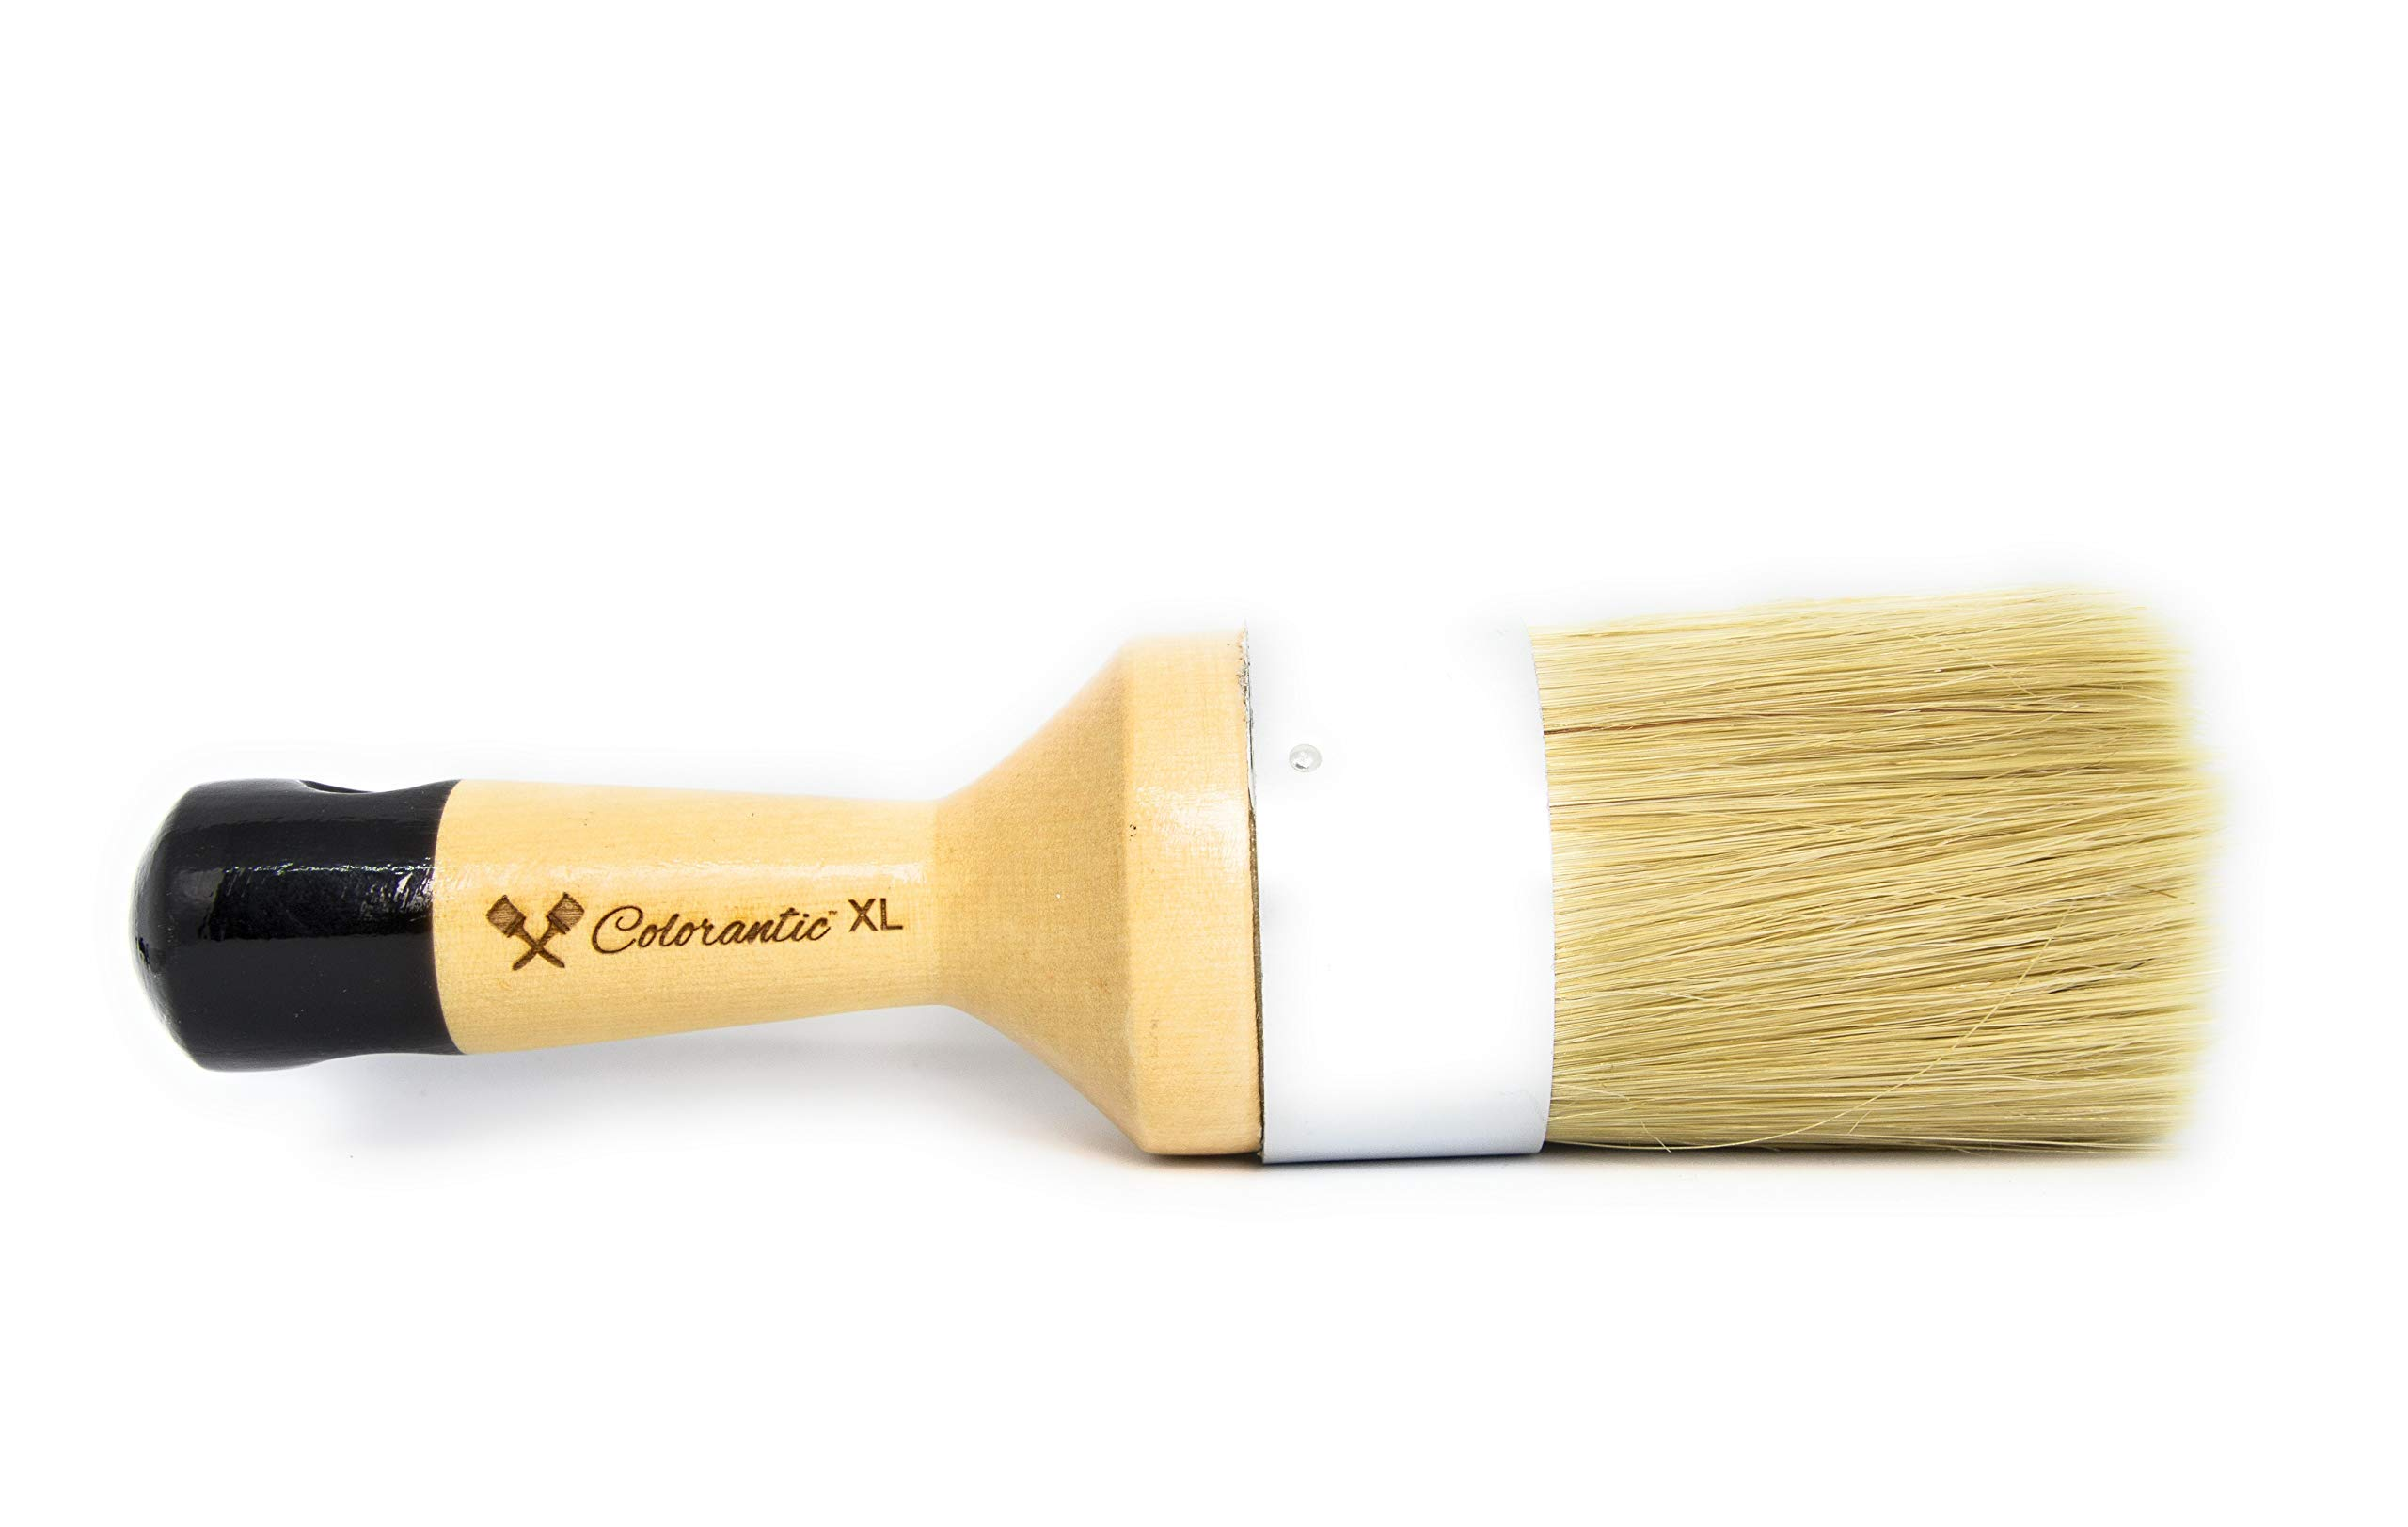 Colorantic   Large Furniture Round Oval Soft Wax Waxes Brush Brushes   Beeswax DIY Chalk Based Paint Fabric Painting (XL Round Natural Brush)